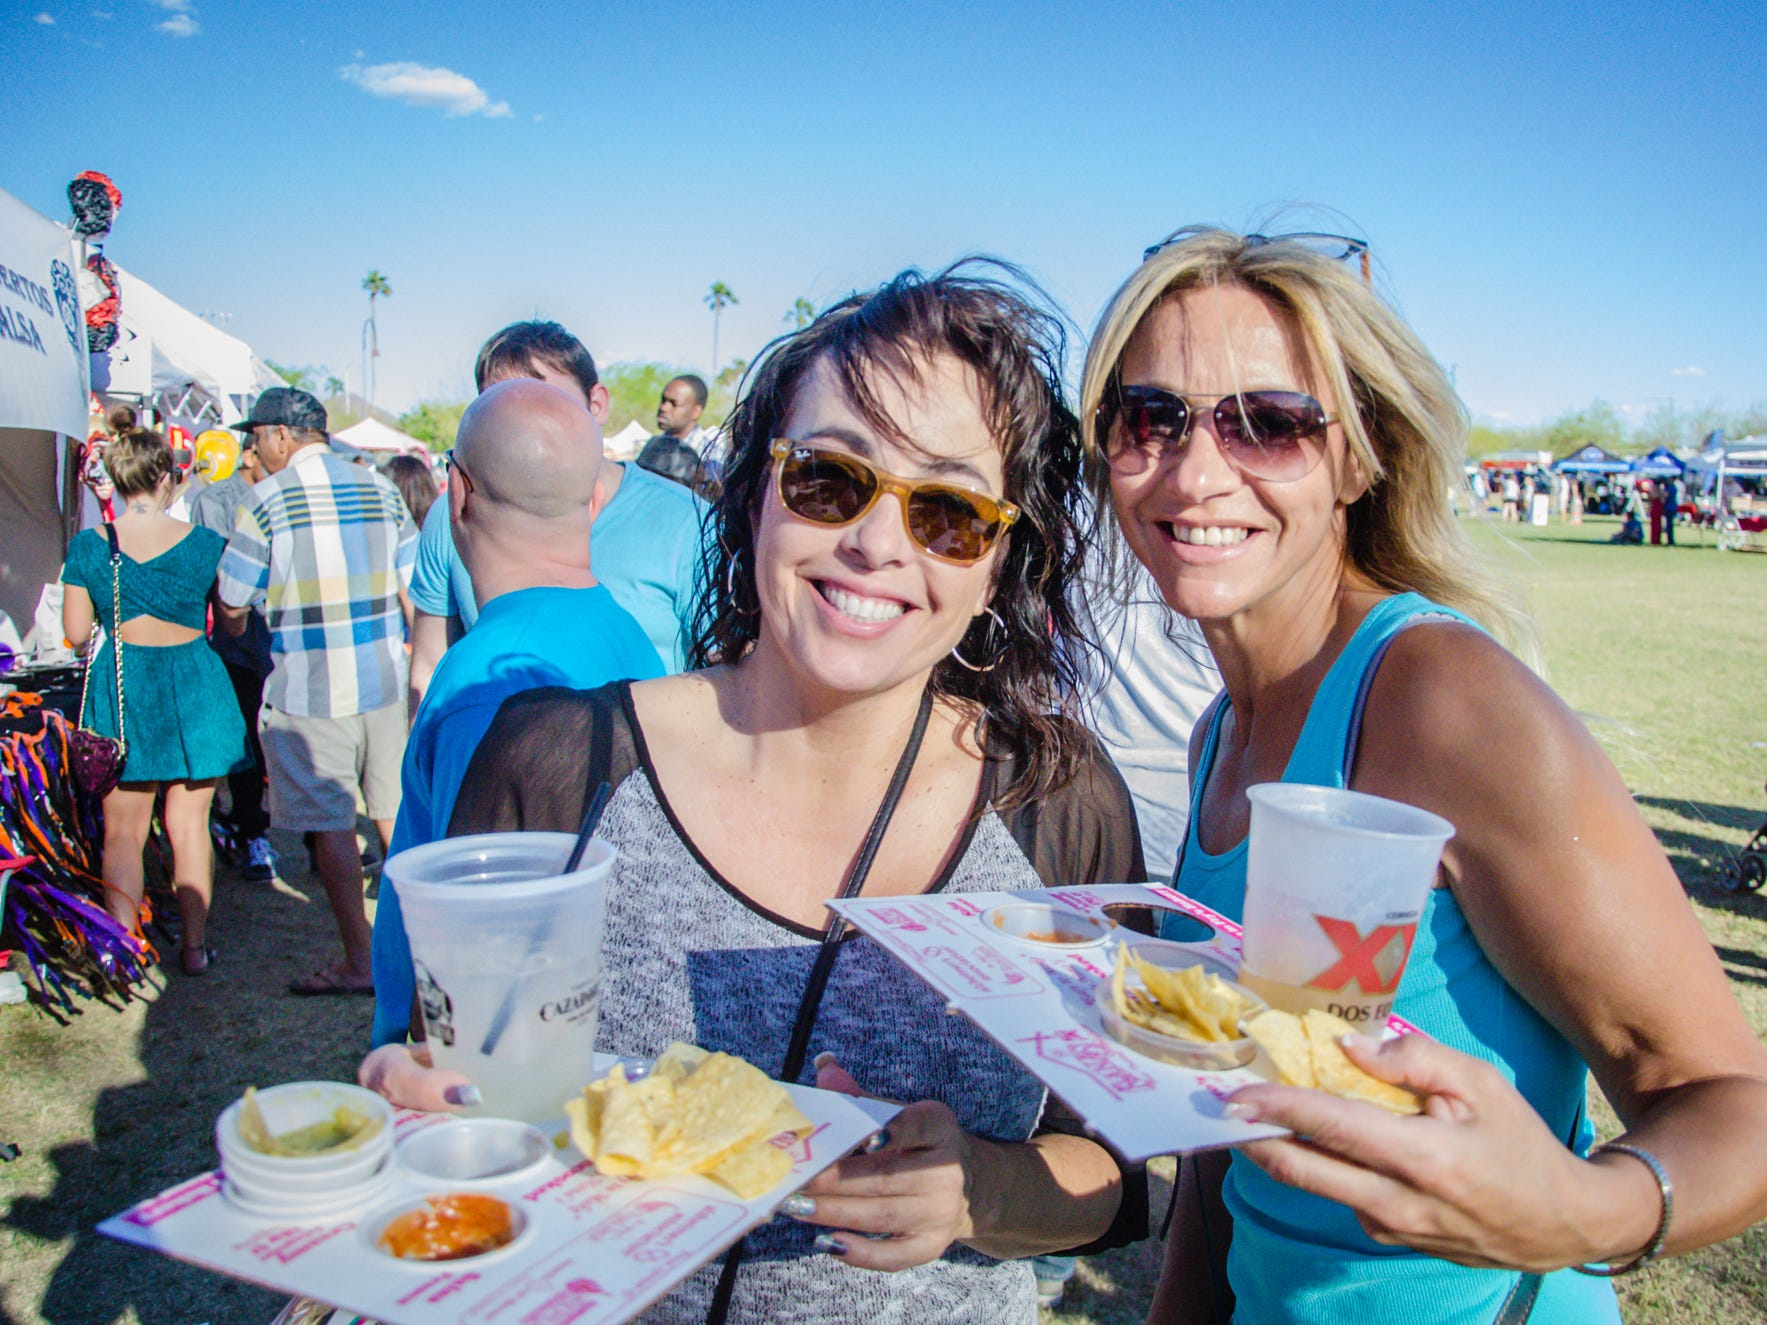 Scheduled for Saturday, April 13, 2019 at Sloan Park, My Nana's Salsa Challenge features a signature salsa competition as well as a Jose Cuervo Margarita Mix-Up.